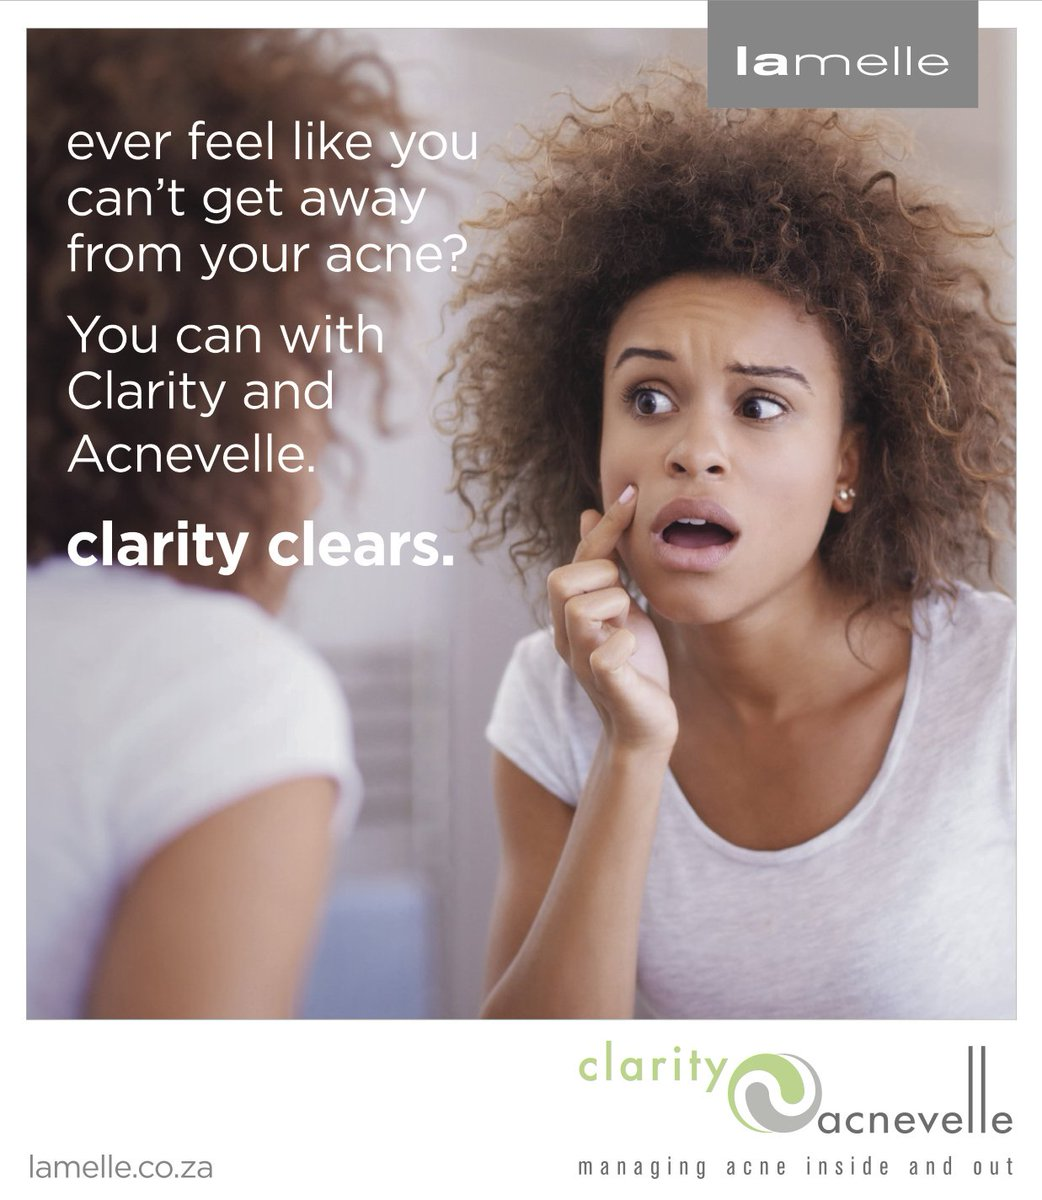 You don't have to worry about #Monday blues or acne with Clarity. Ask your skincare specialist about Clarity by Lamelle. #ClarityClears